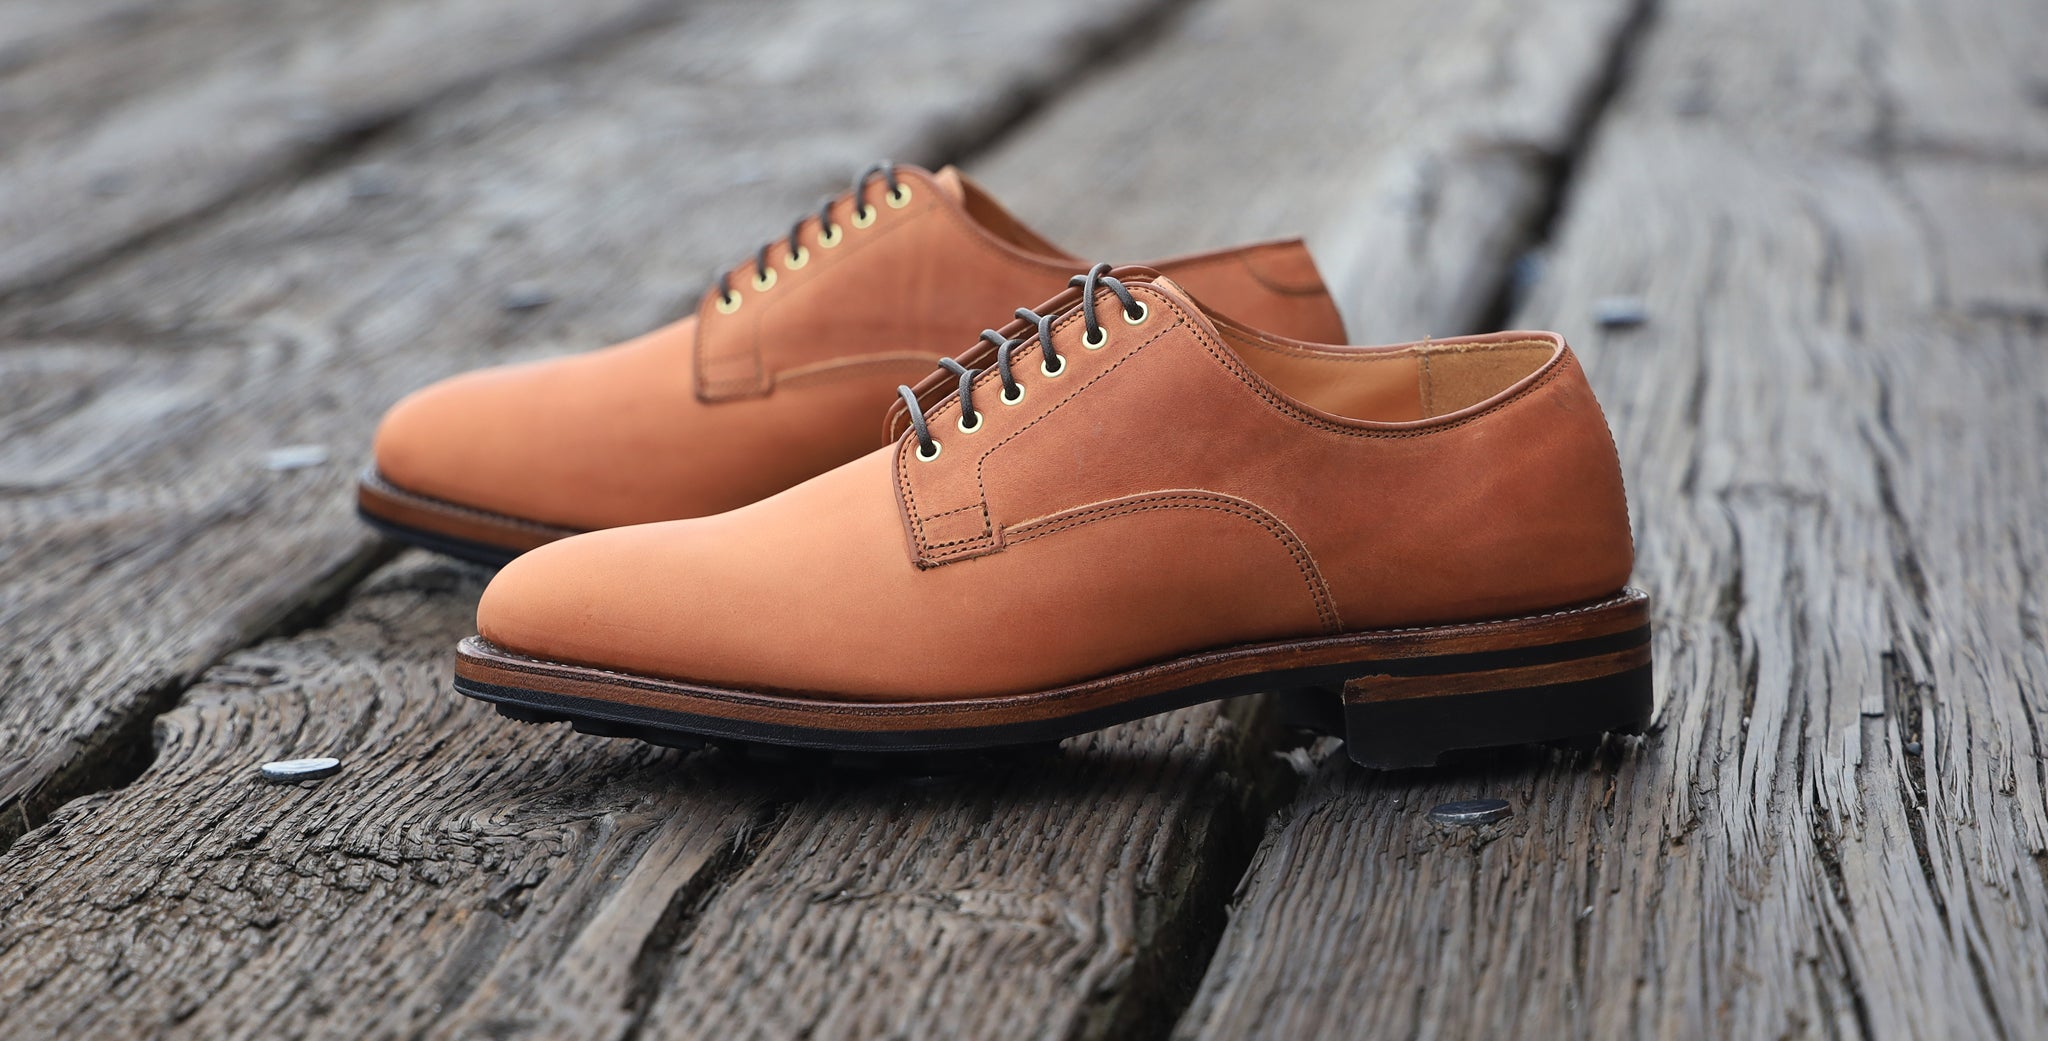 Tannino Vitello Calf Derby Shoe